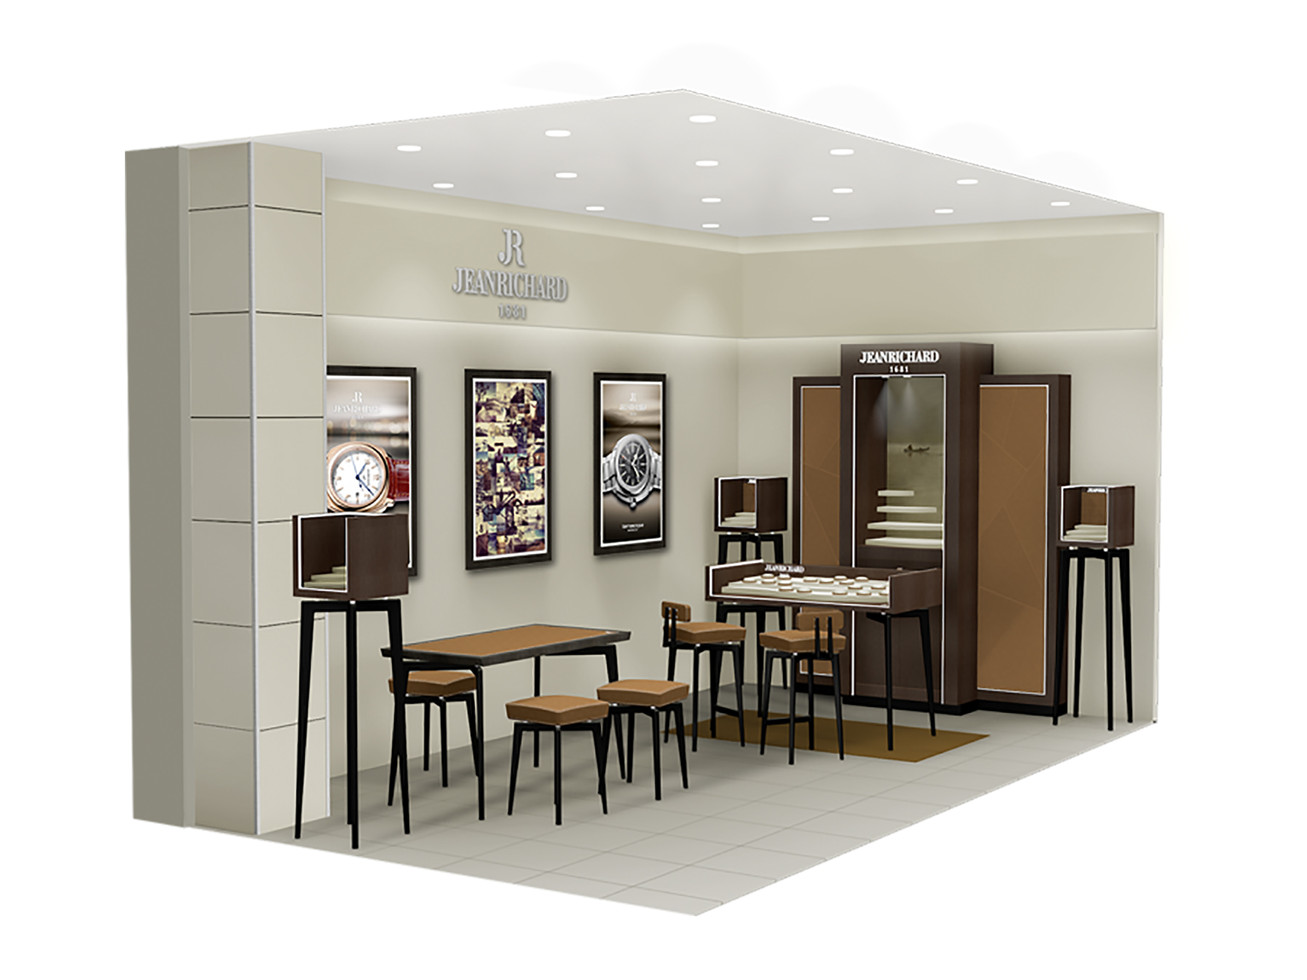 Boutique Concept - Nanchang